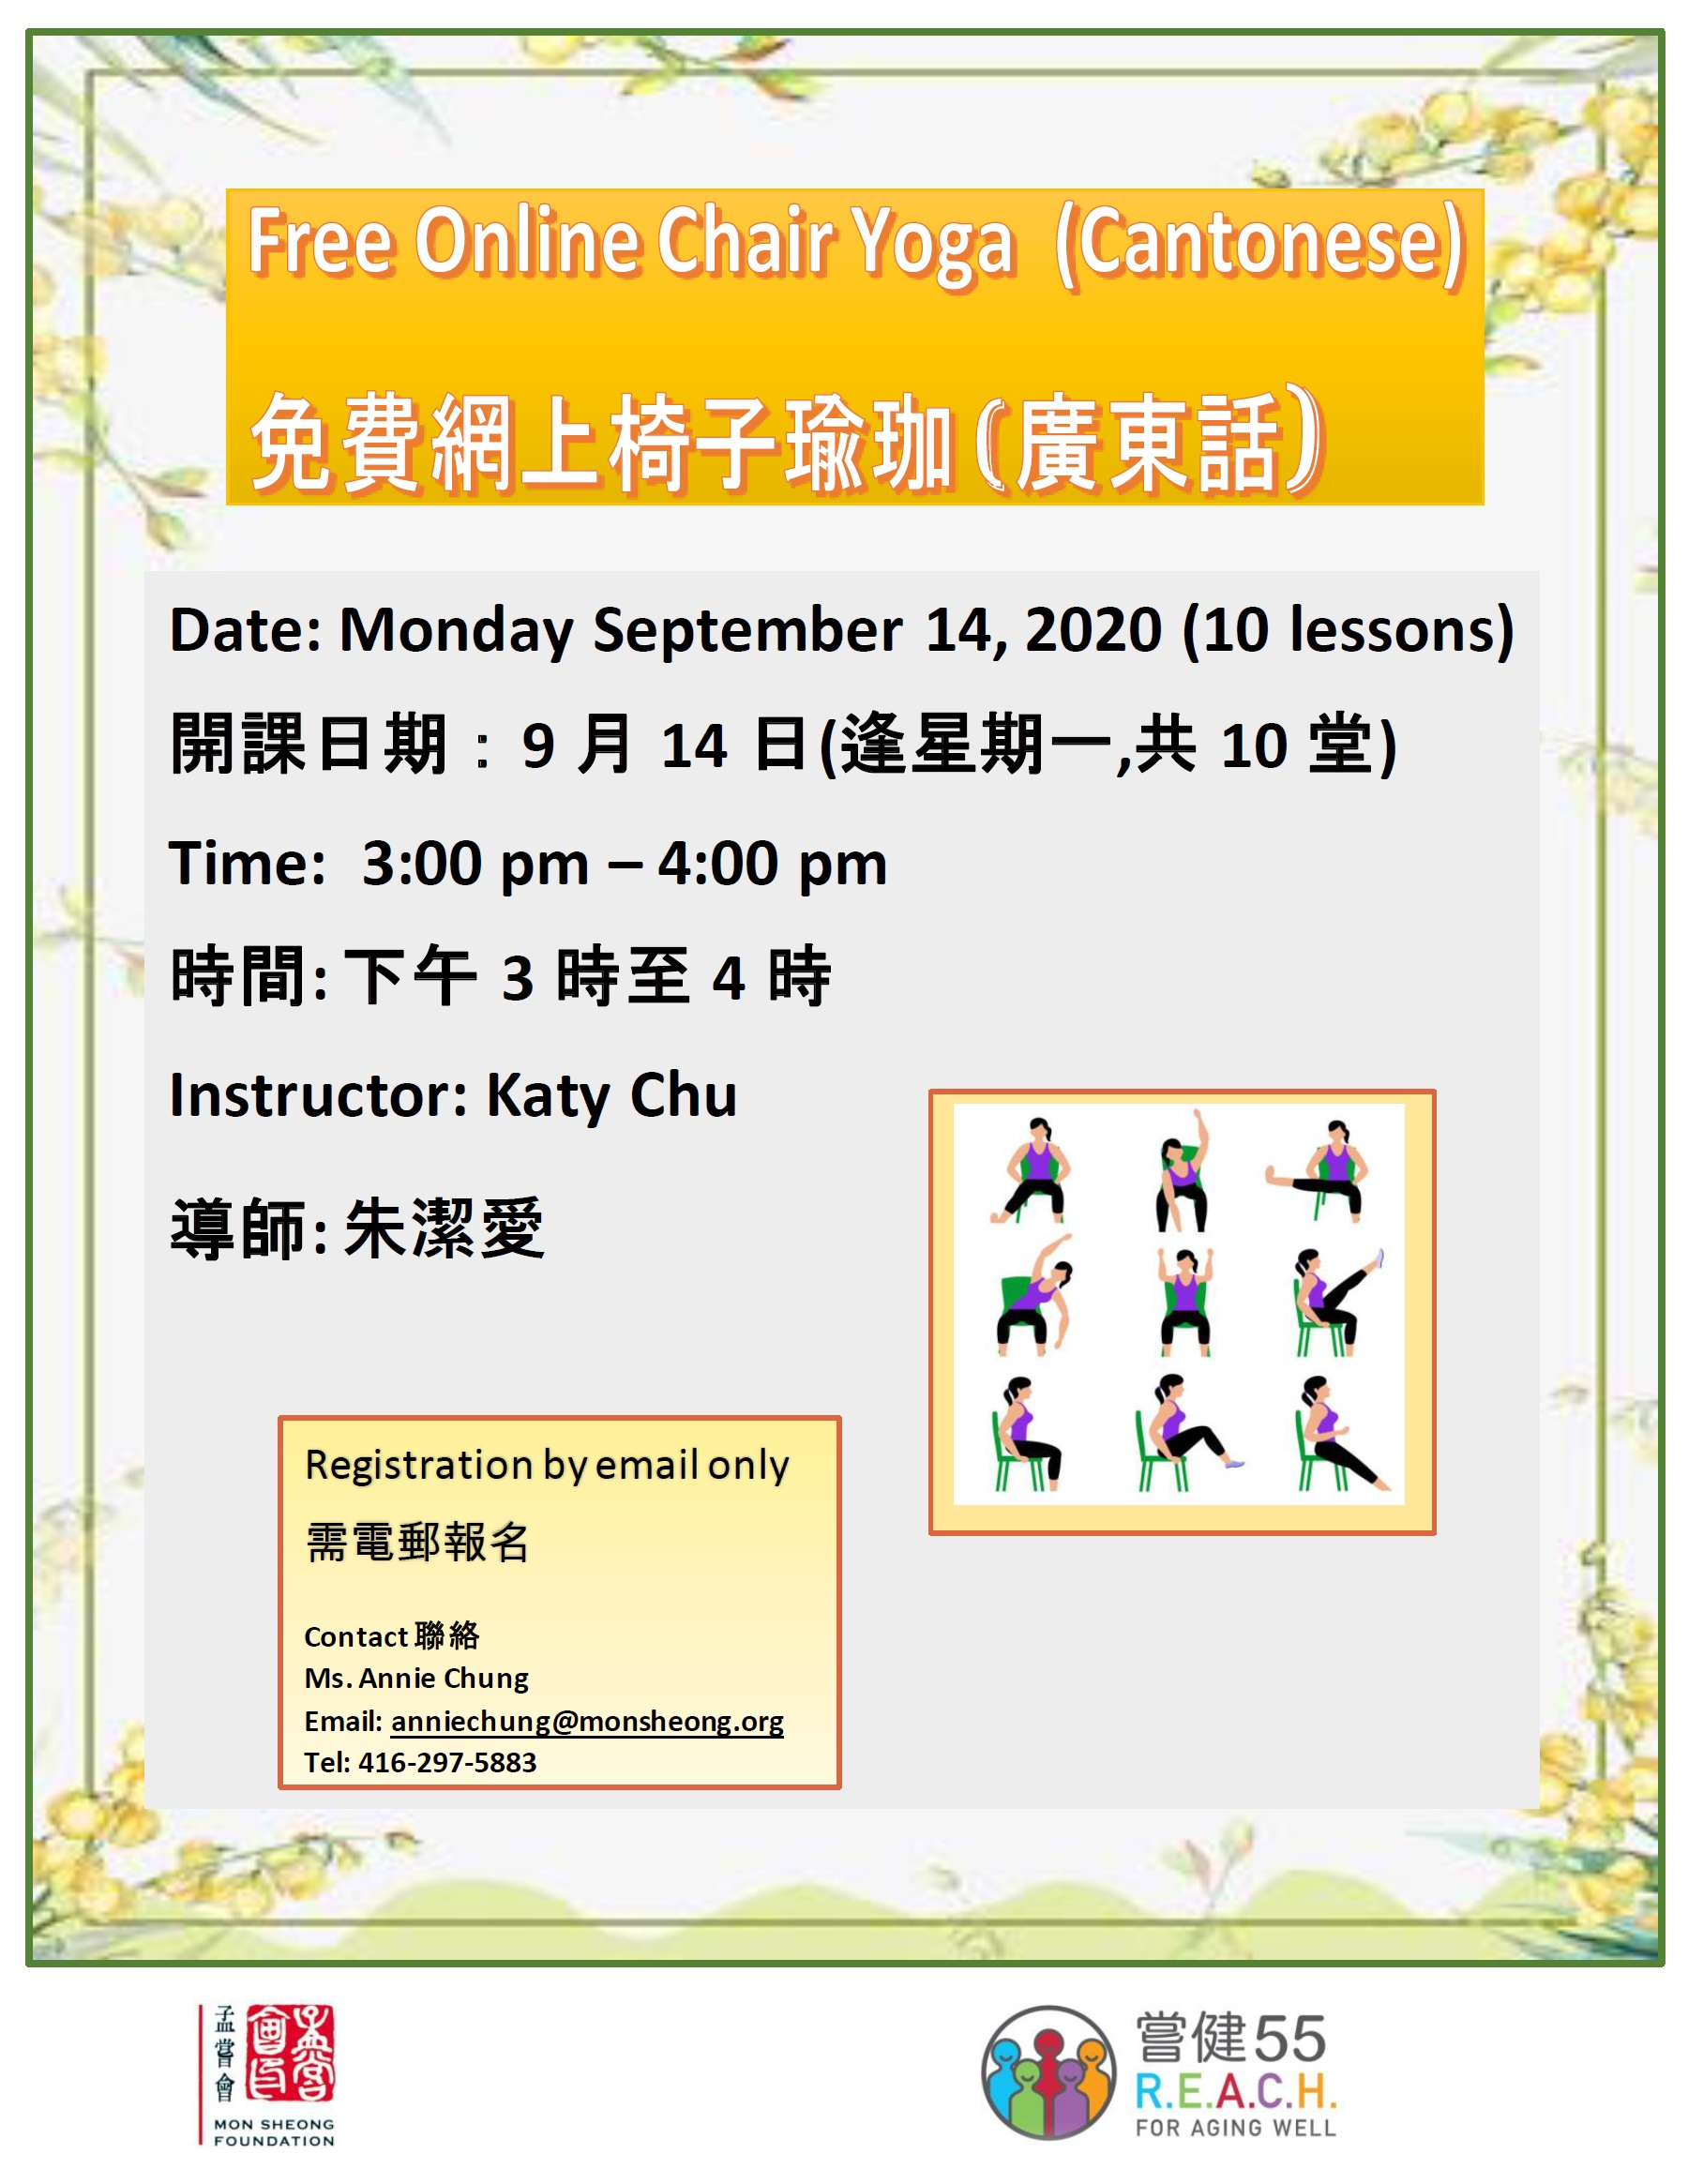 Free Online Chair Yoga (Cantonese)